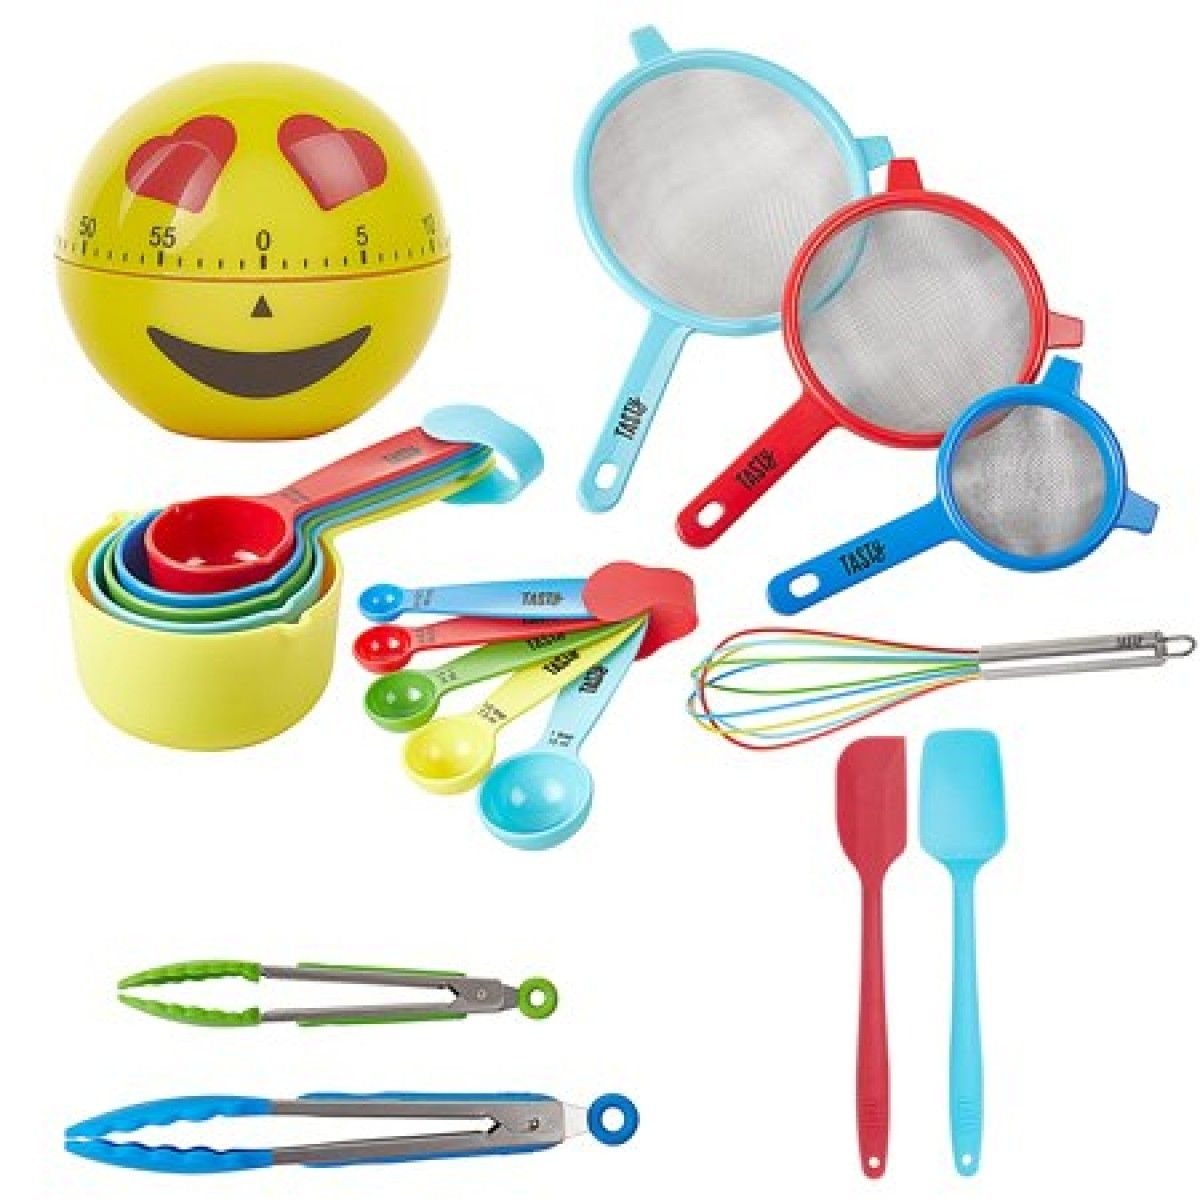 Tasty 19Piece Kitchen Utensil And Gadget Set